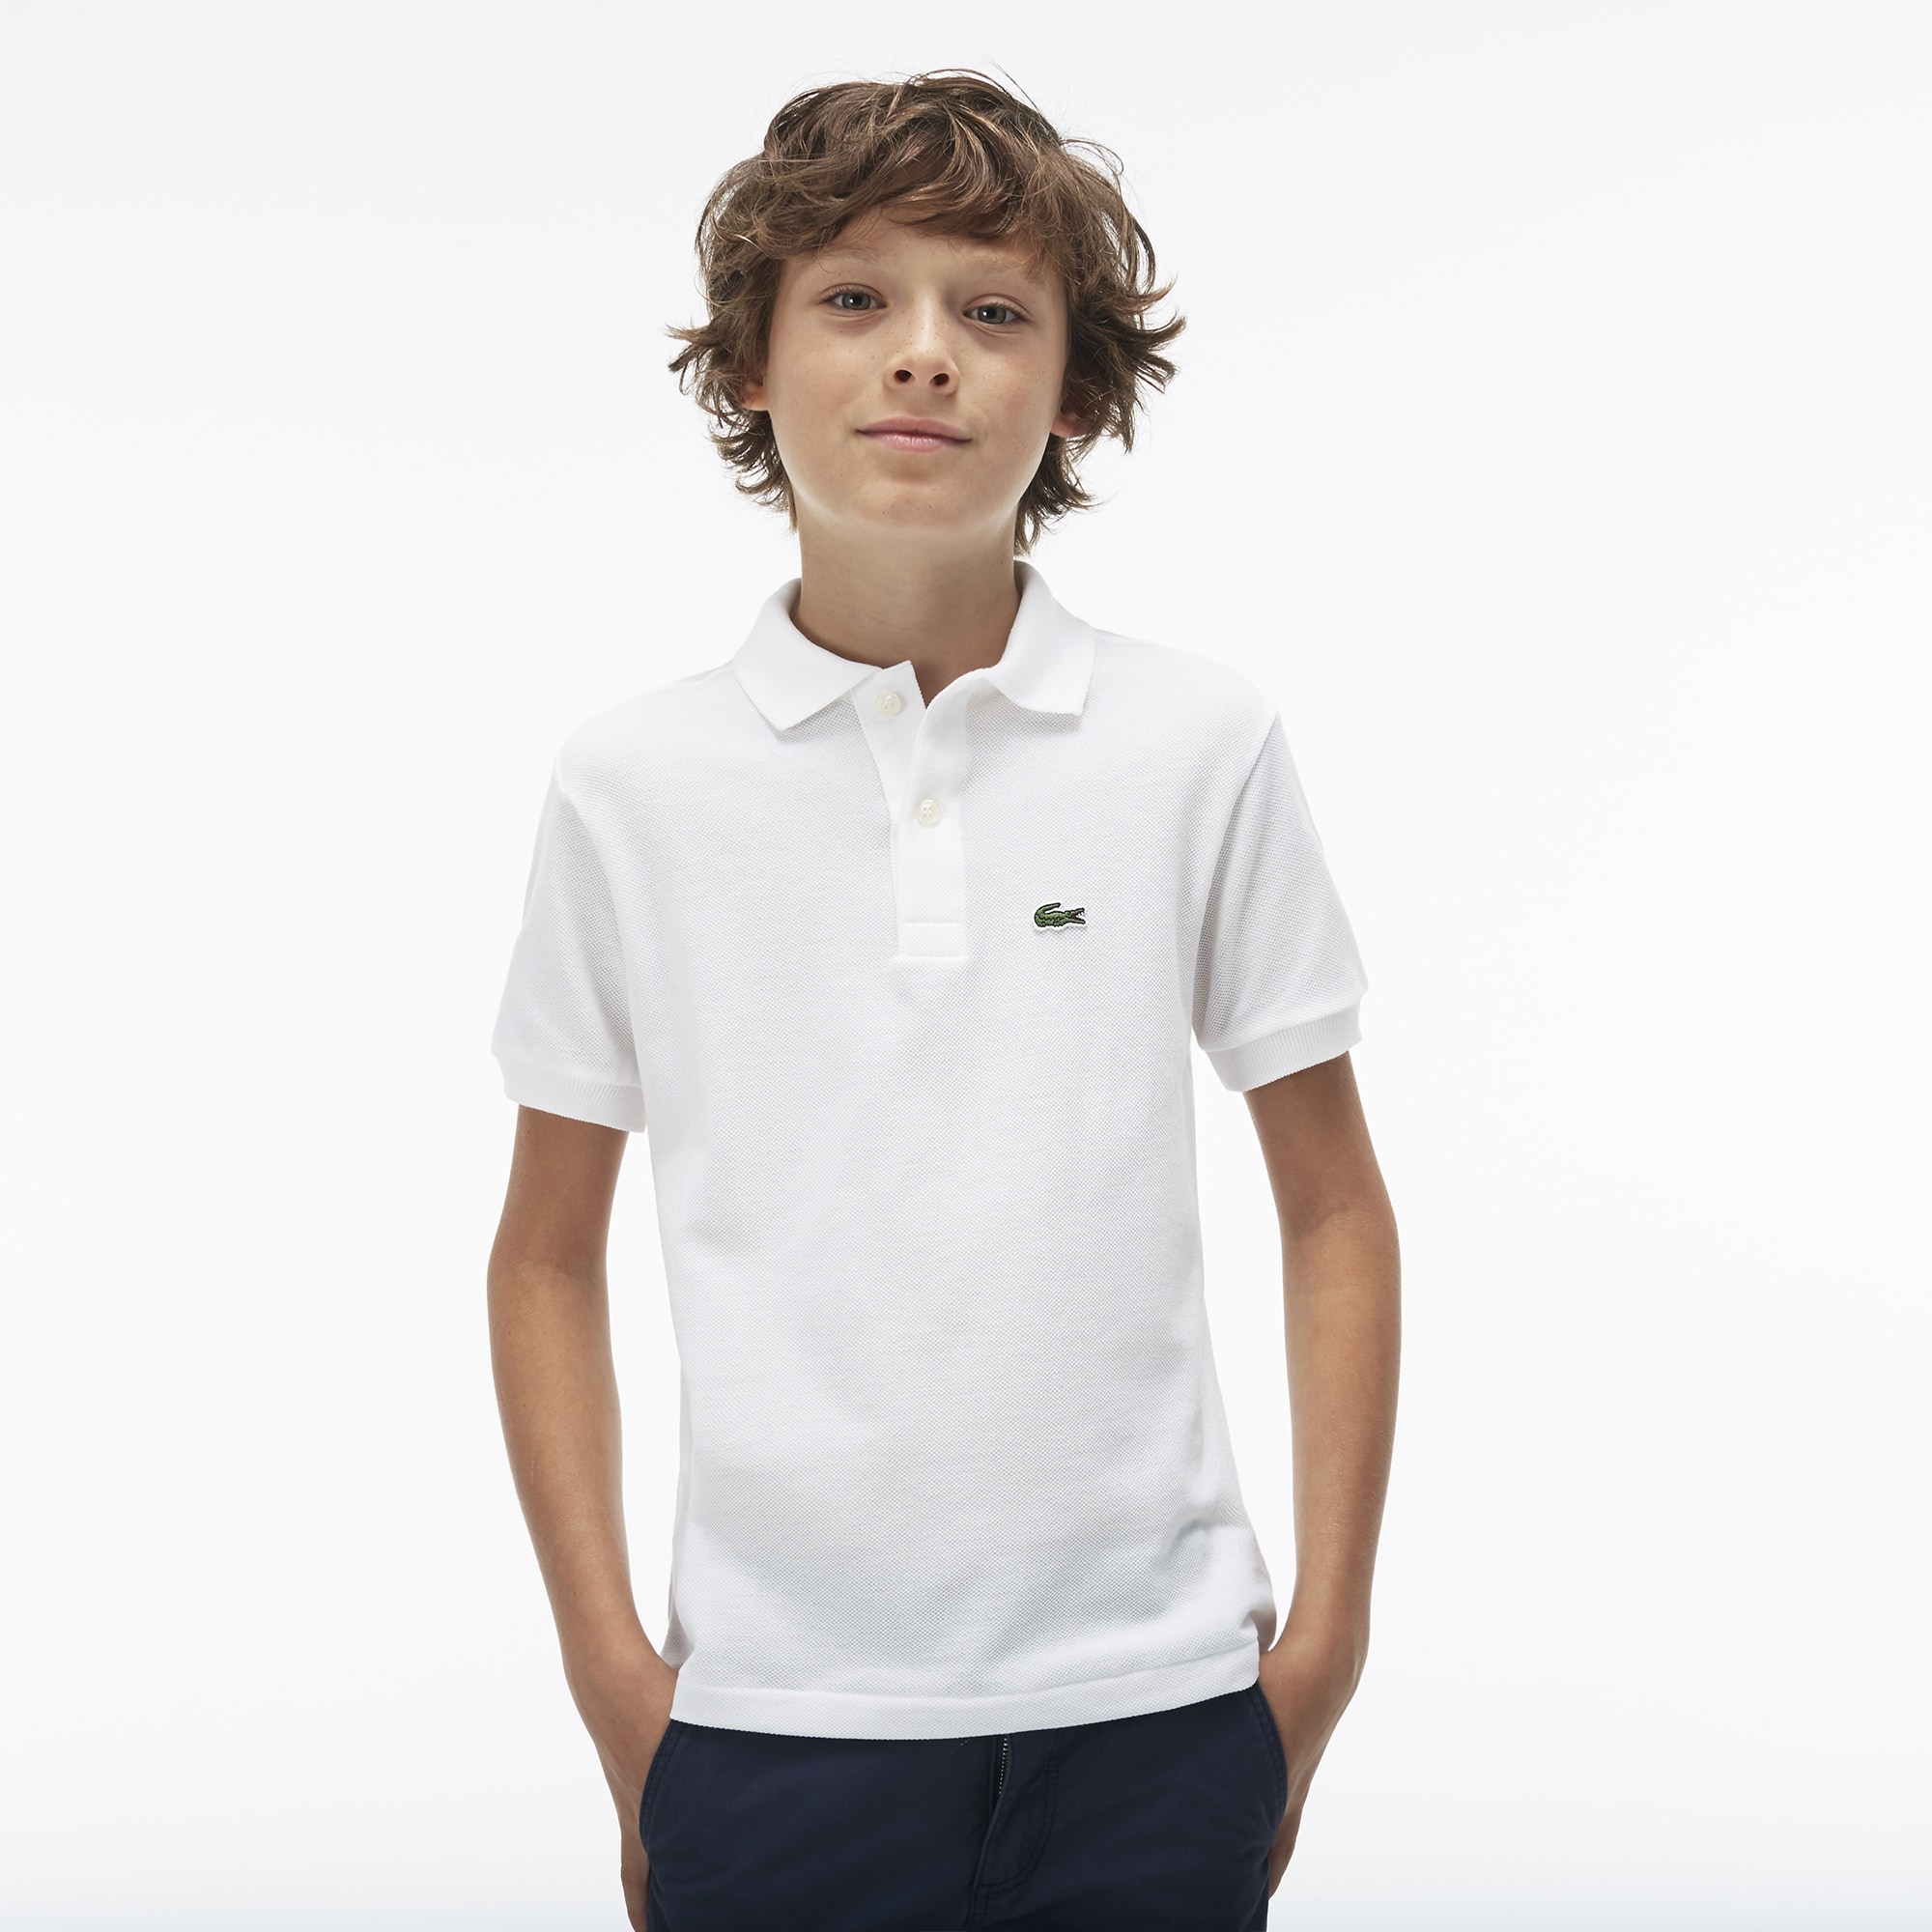 652419cf9a Customised Kids Lacoste Polo